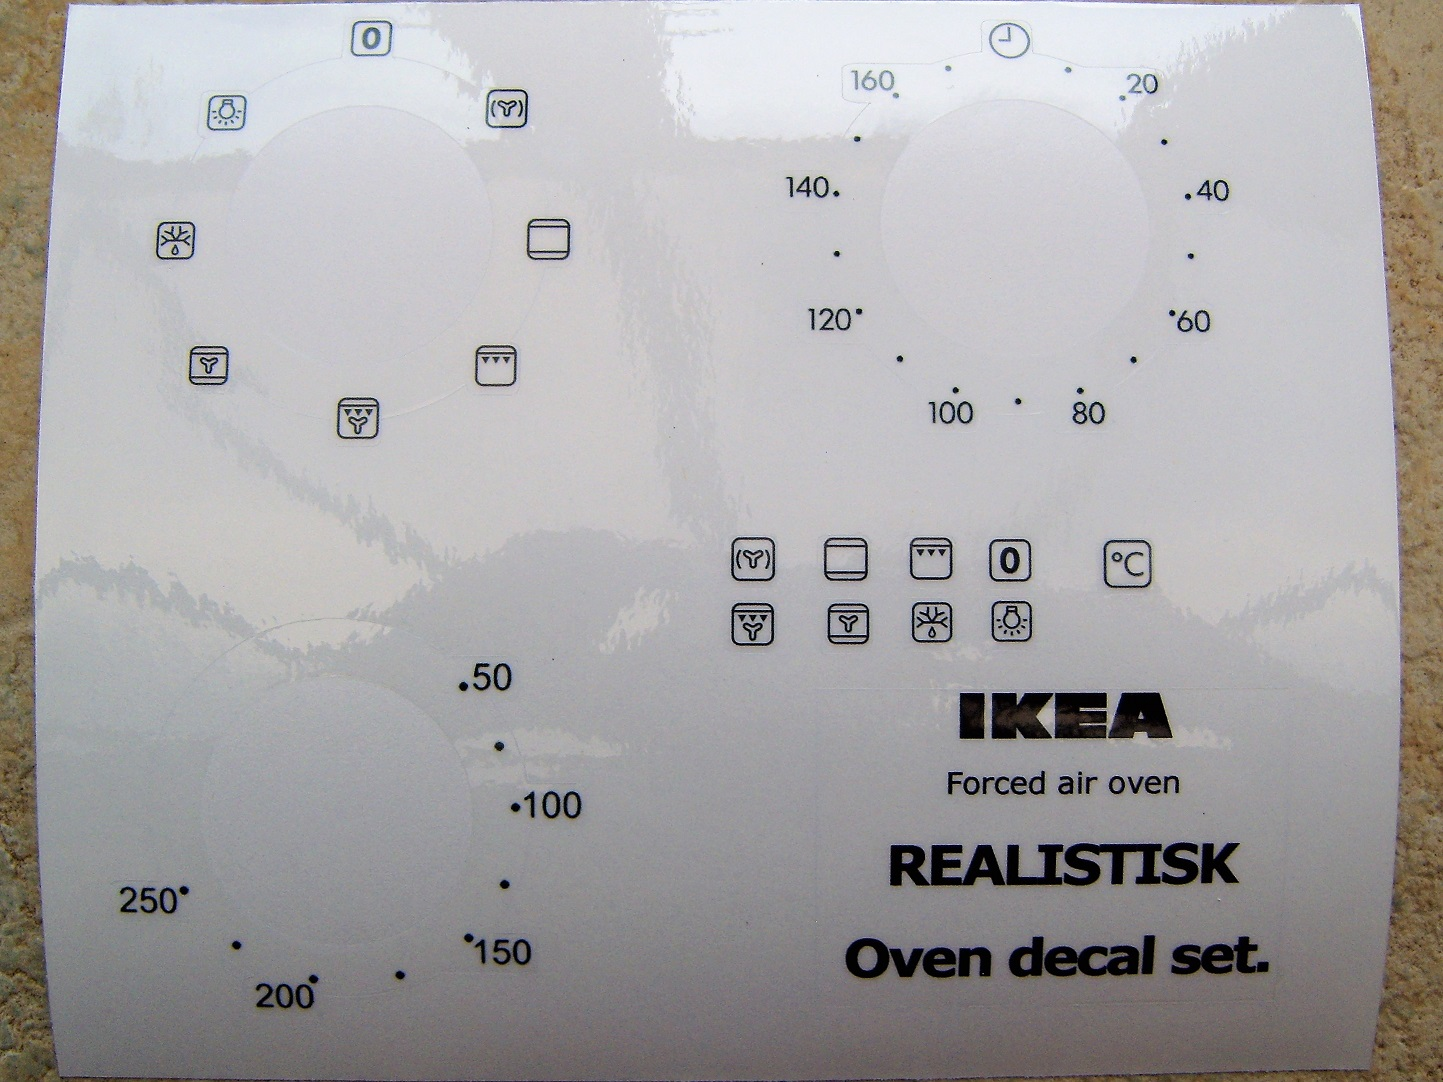 REALISTIK Forced air oven decal sticker set.